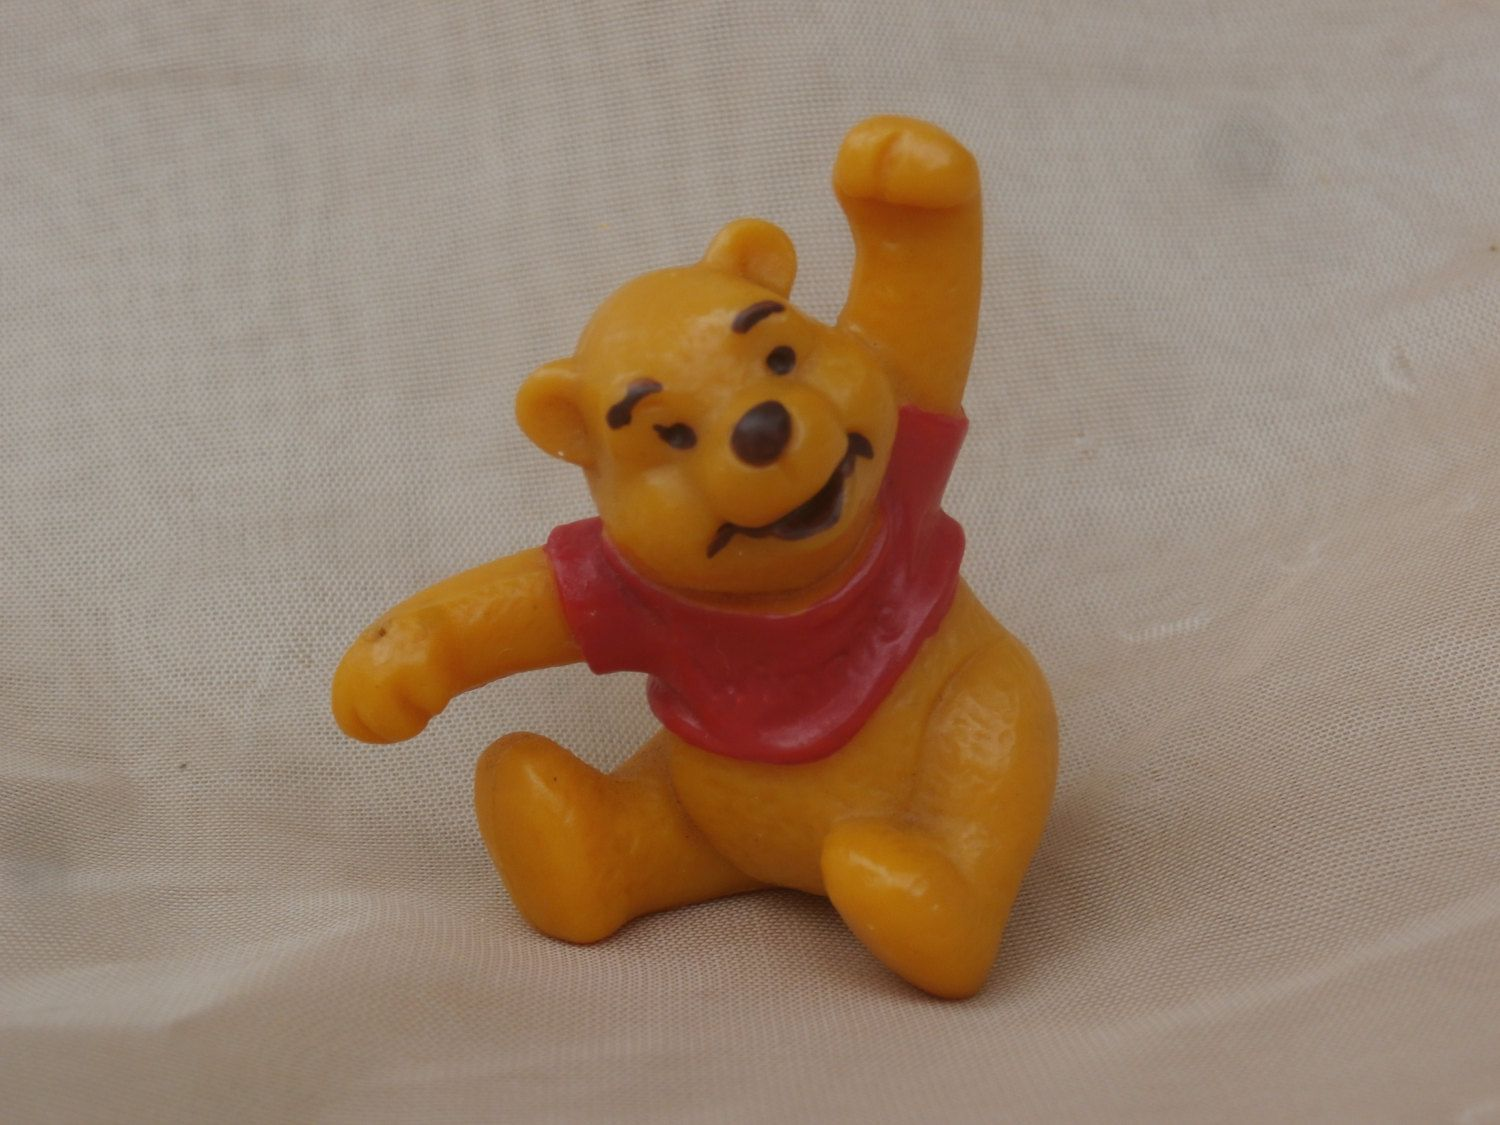 Vintage Pooh Bear Figurine, Bully W. Germany, Walt Disney Productions PVC Winnie the Pooh by MendozamVintage on Etsy